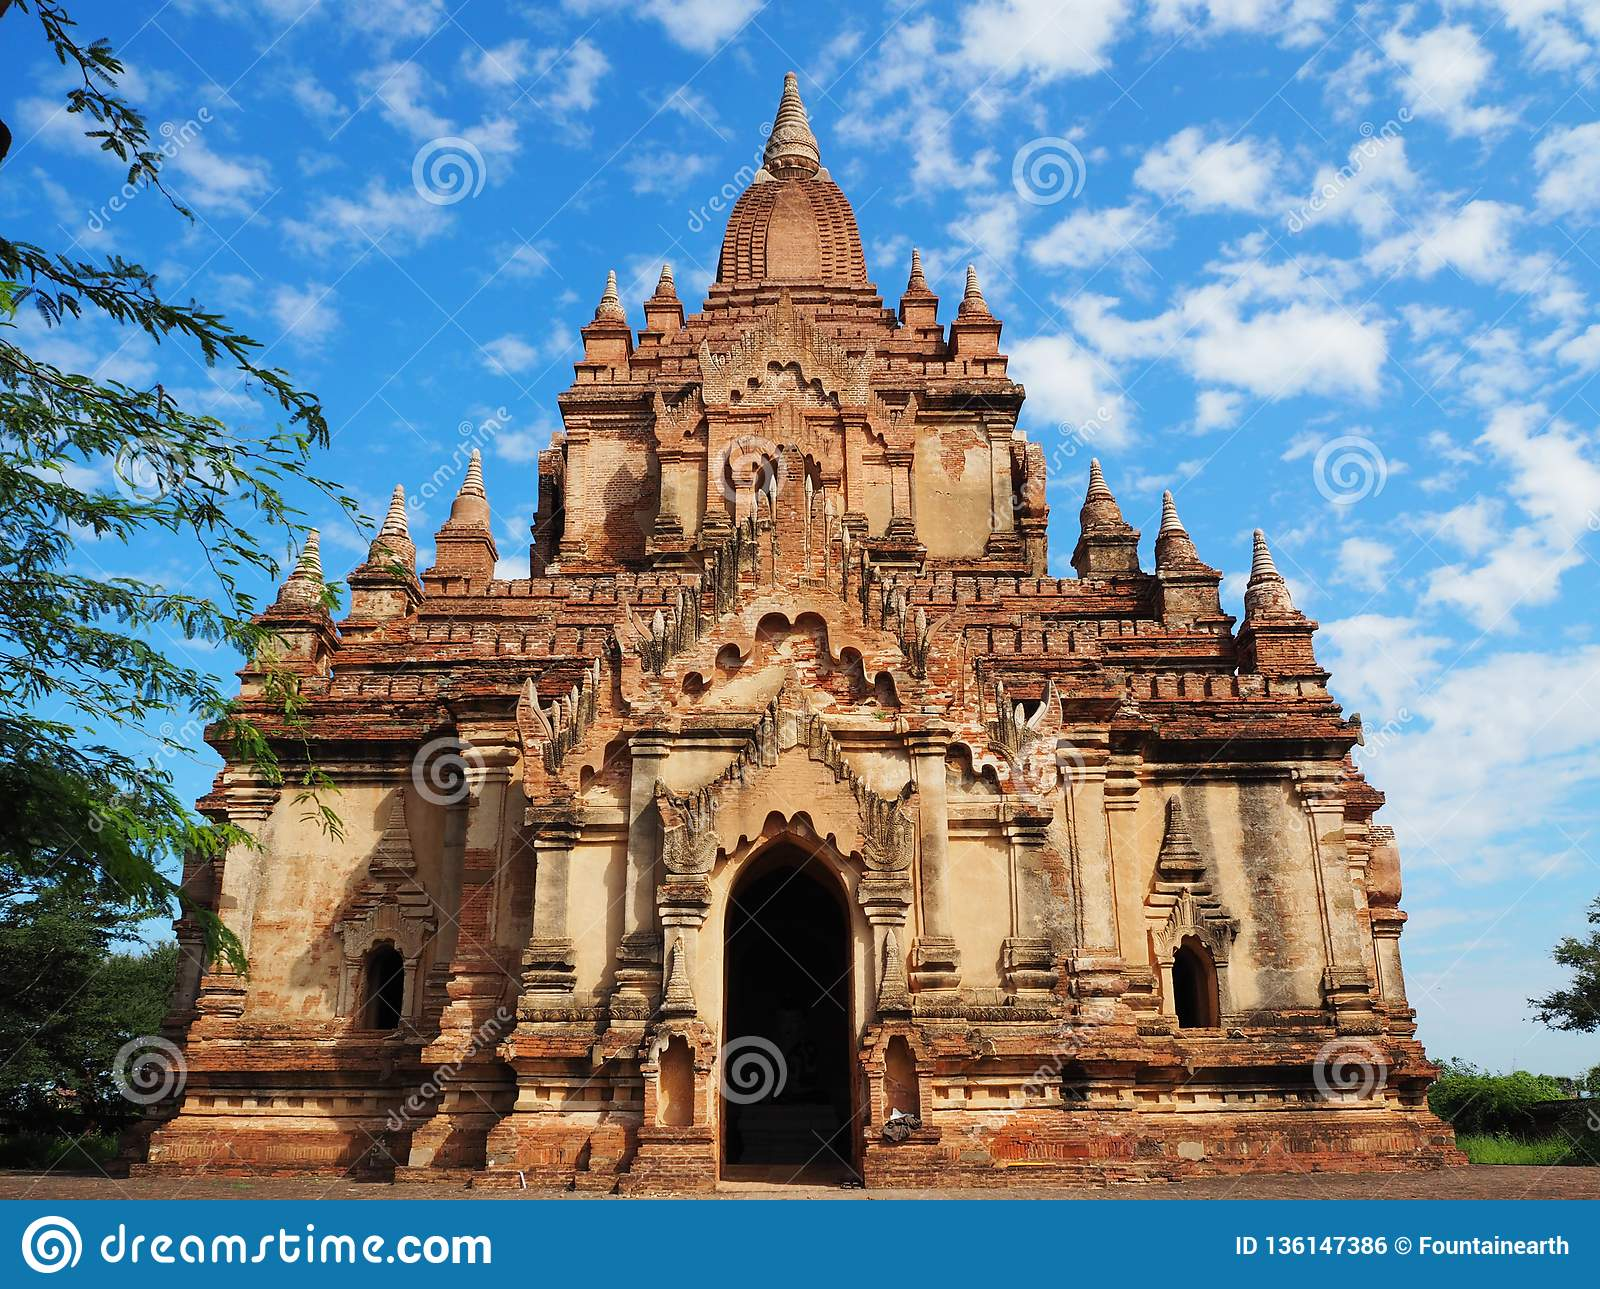 Alter Tempel-Standort in Bagan, Myanmar